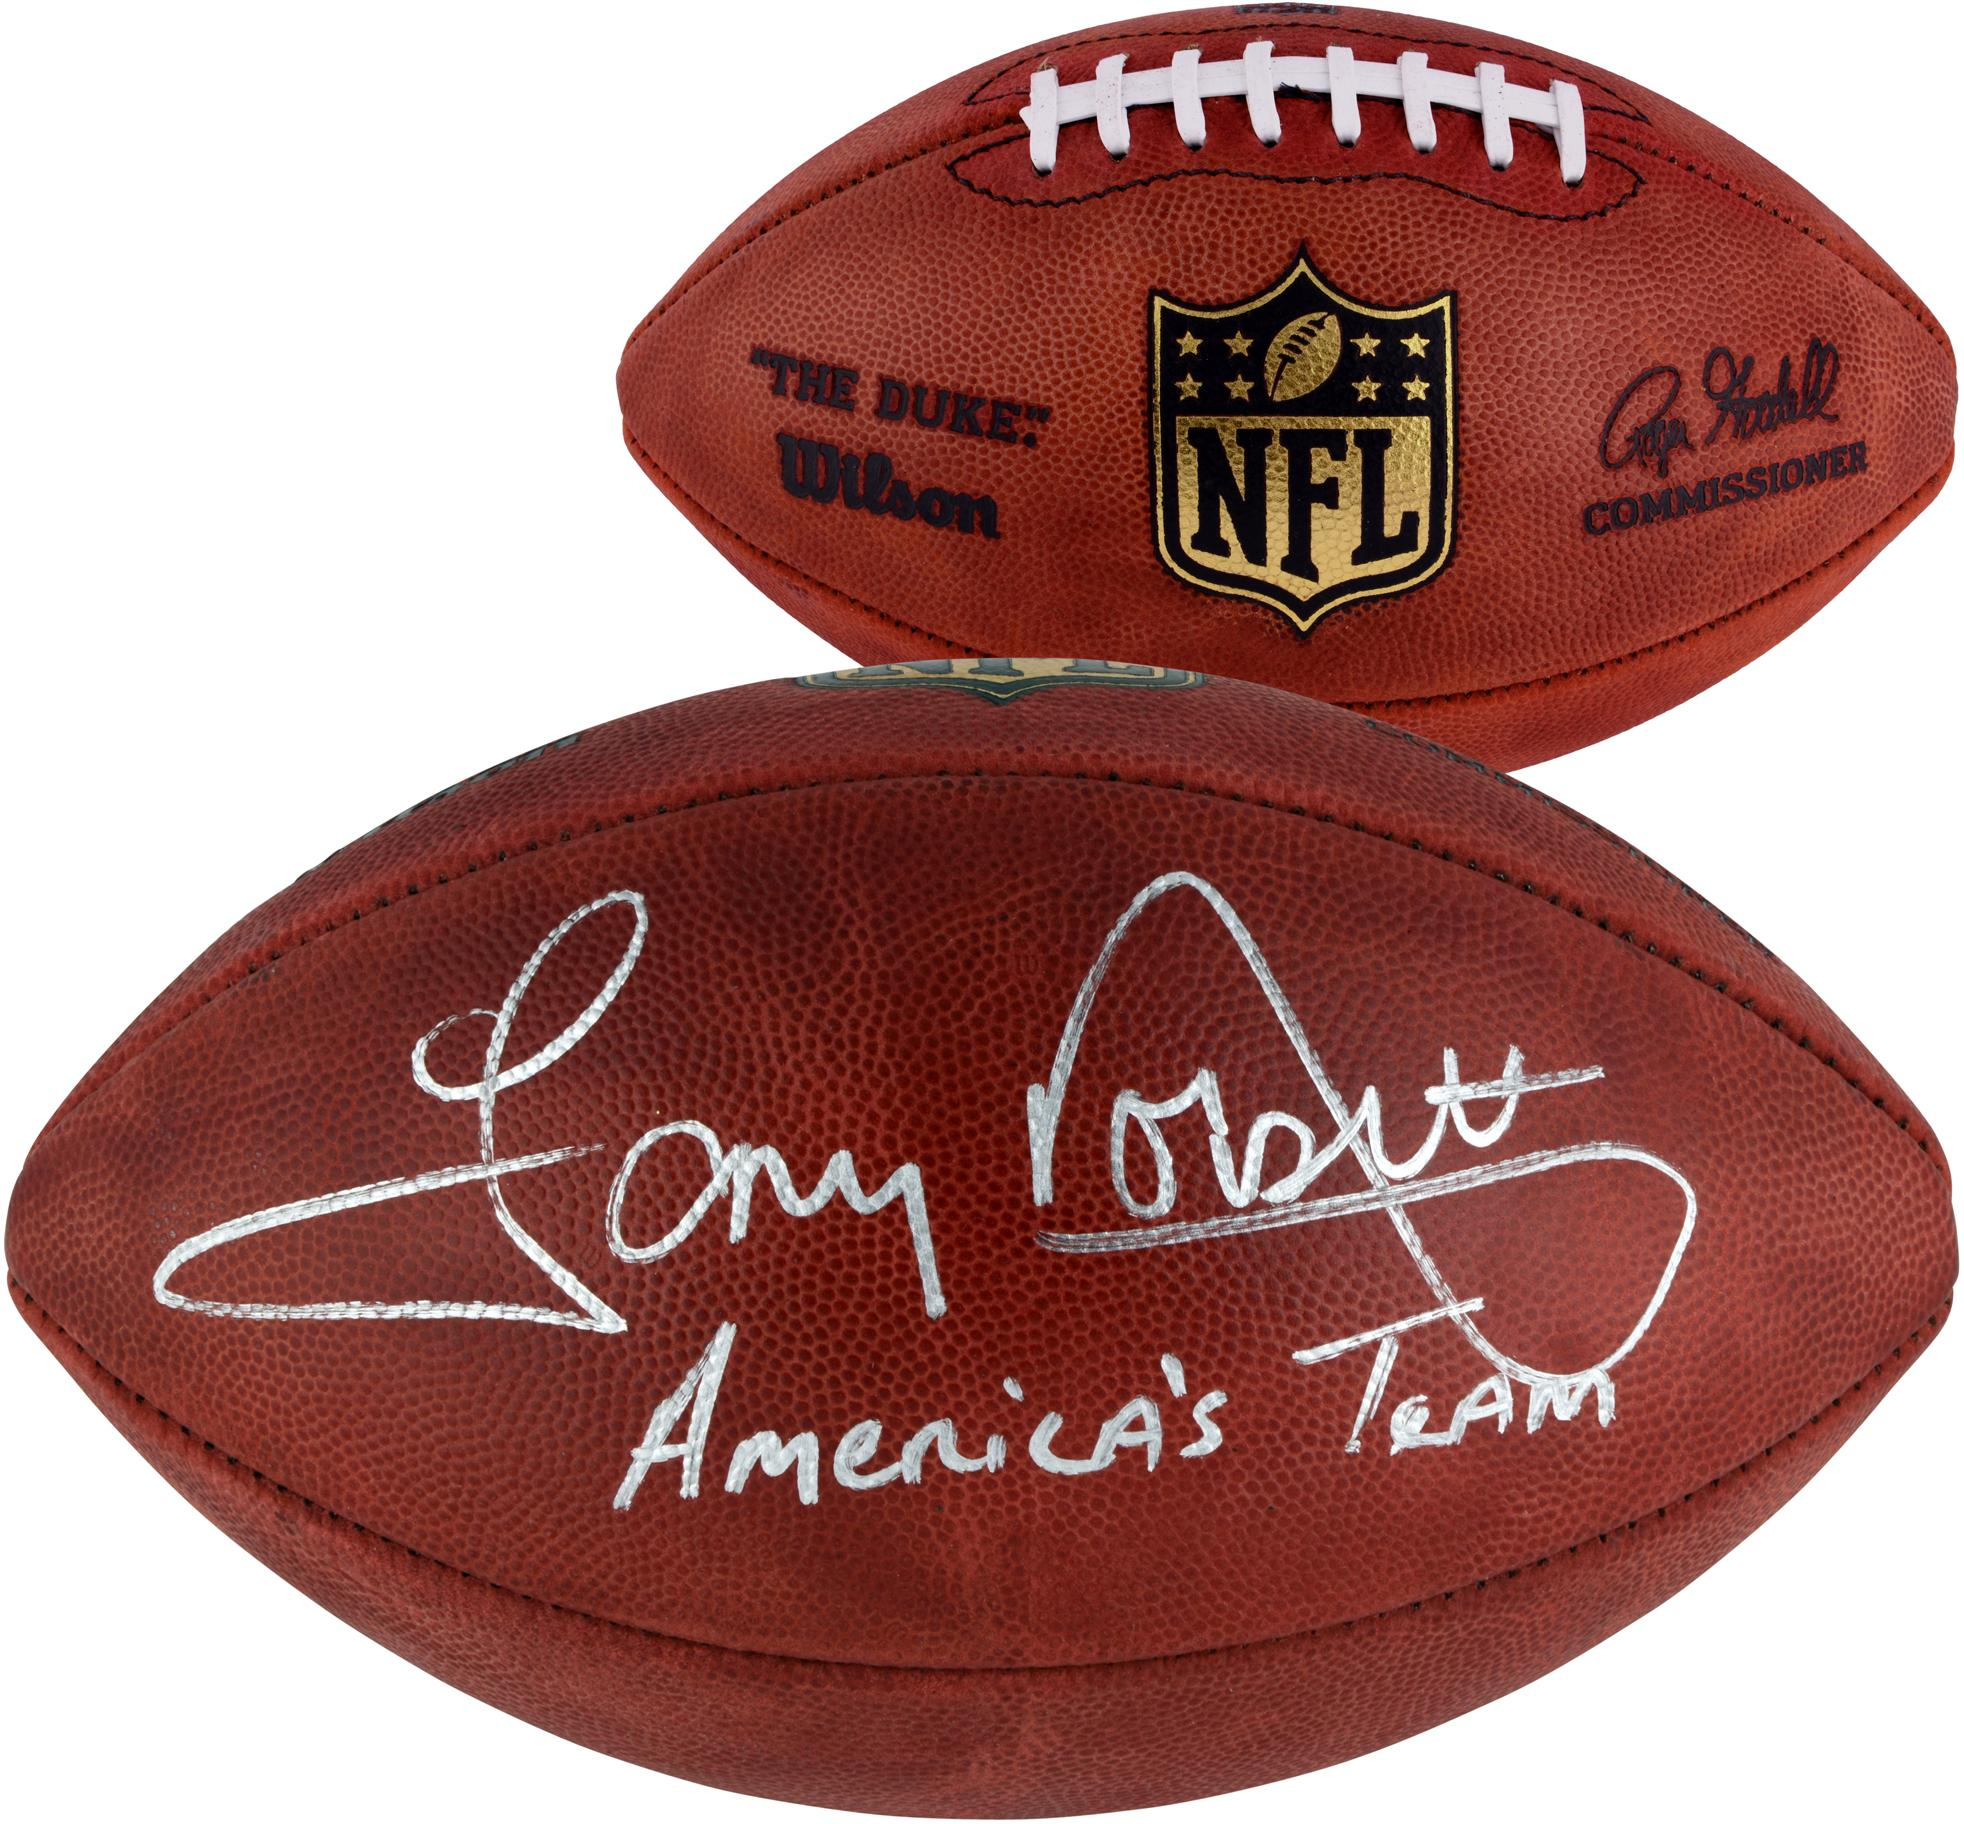 Tony Dorsett Dallas Cowboys Autographed Duke Football with Americas Team Inscription